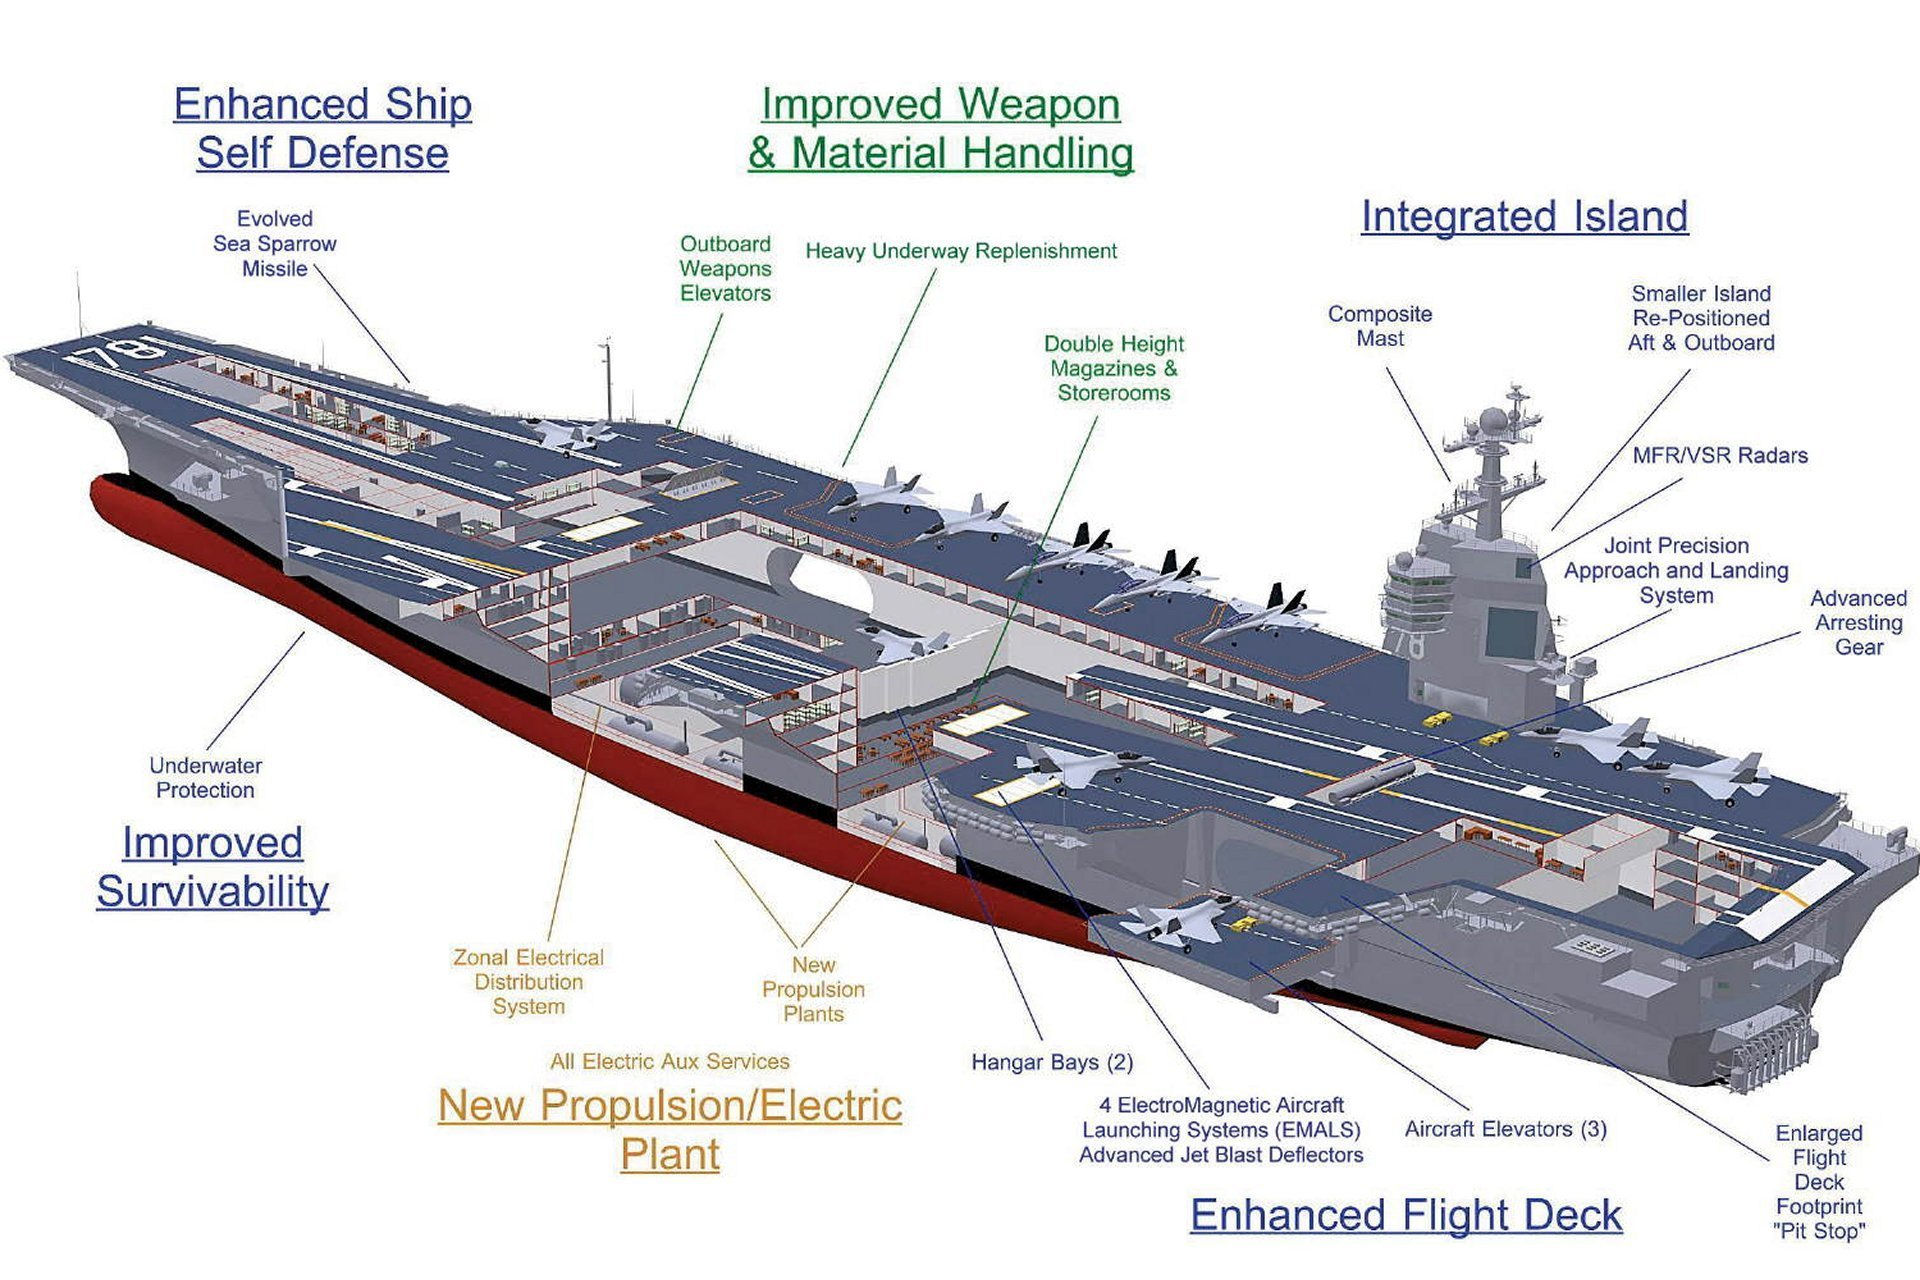 15.CVN78ClassAircraftCarrier_cross-section